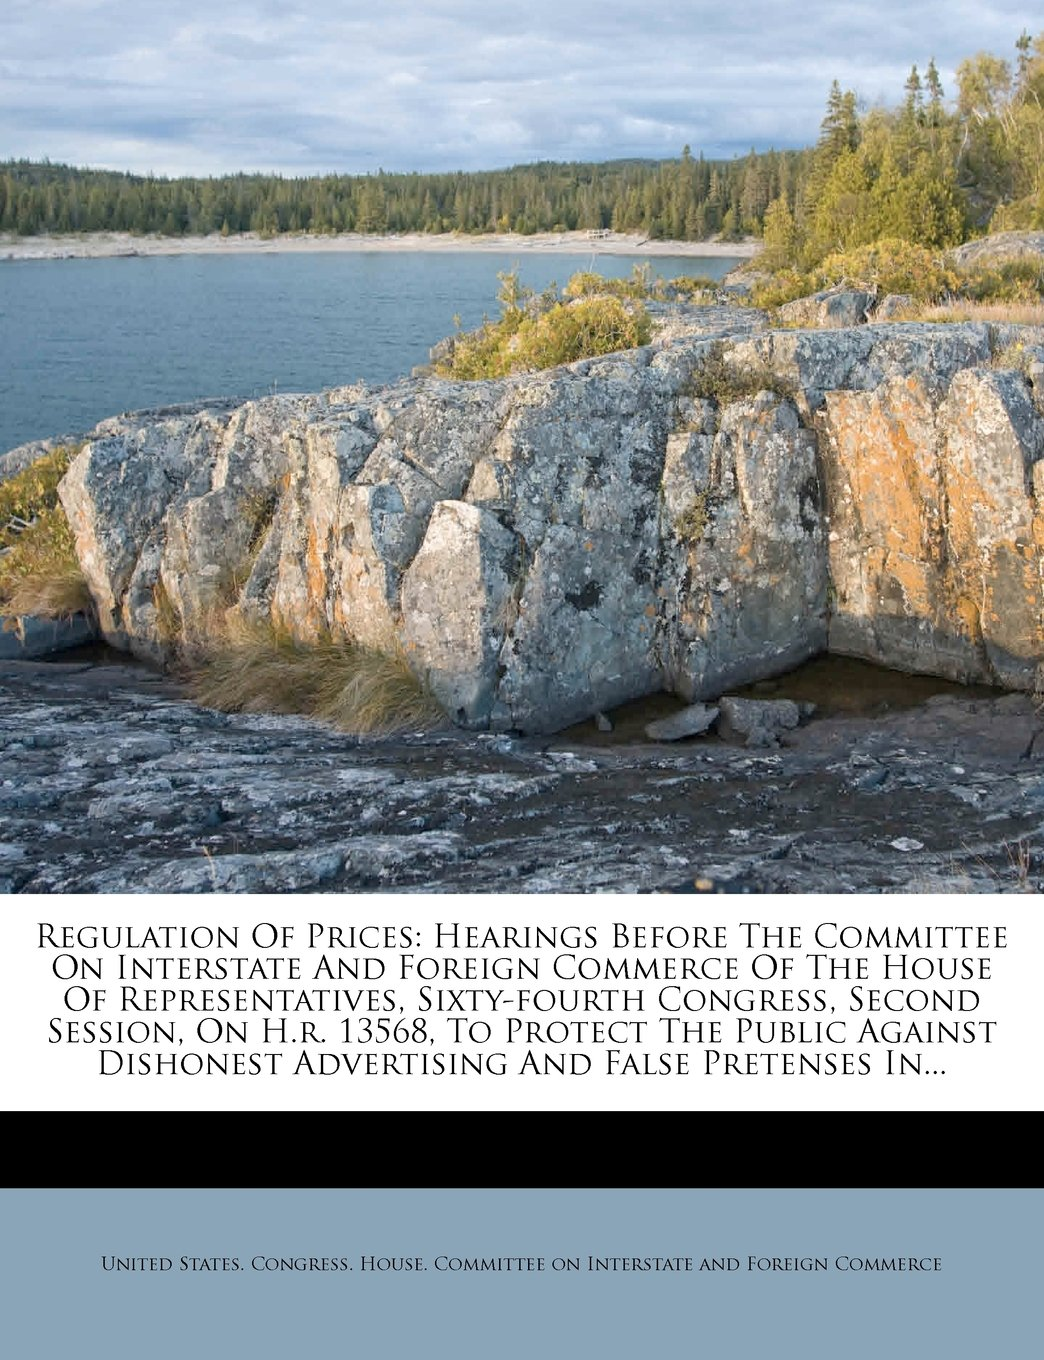 Regulation Of Prices: Hearings Before The Committee On Interstate And Foreign Commerce Of The House Of Representatives, Sixty-fourth Congress, Second ... Advertising And False Pretenses In... pdf